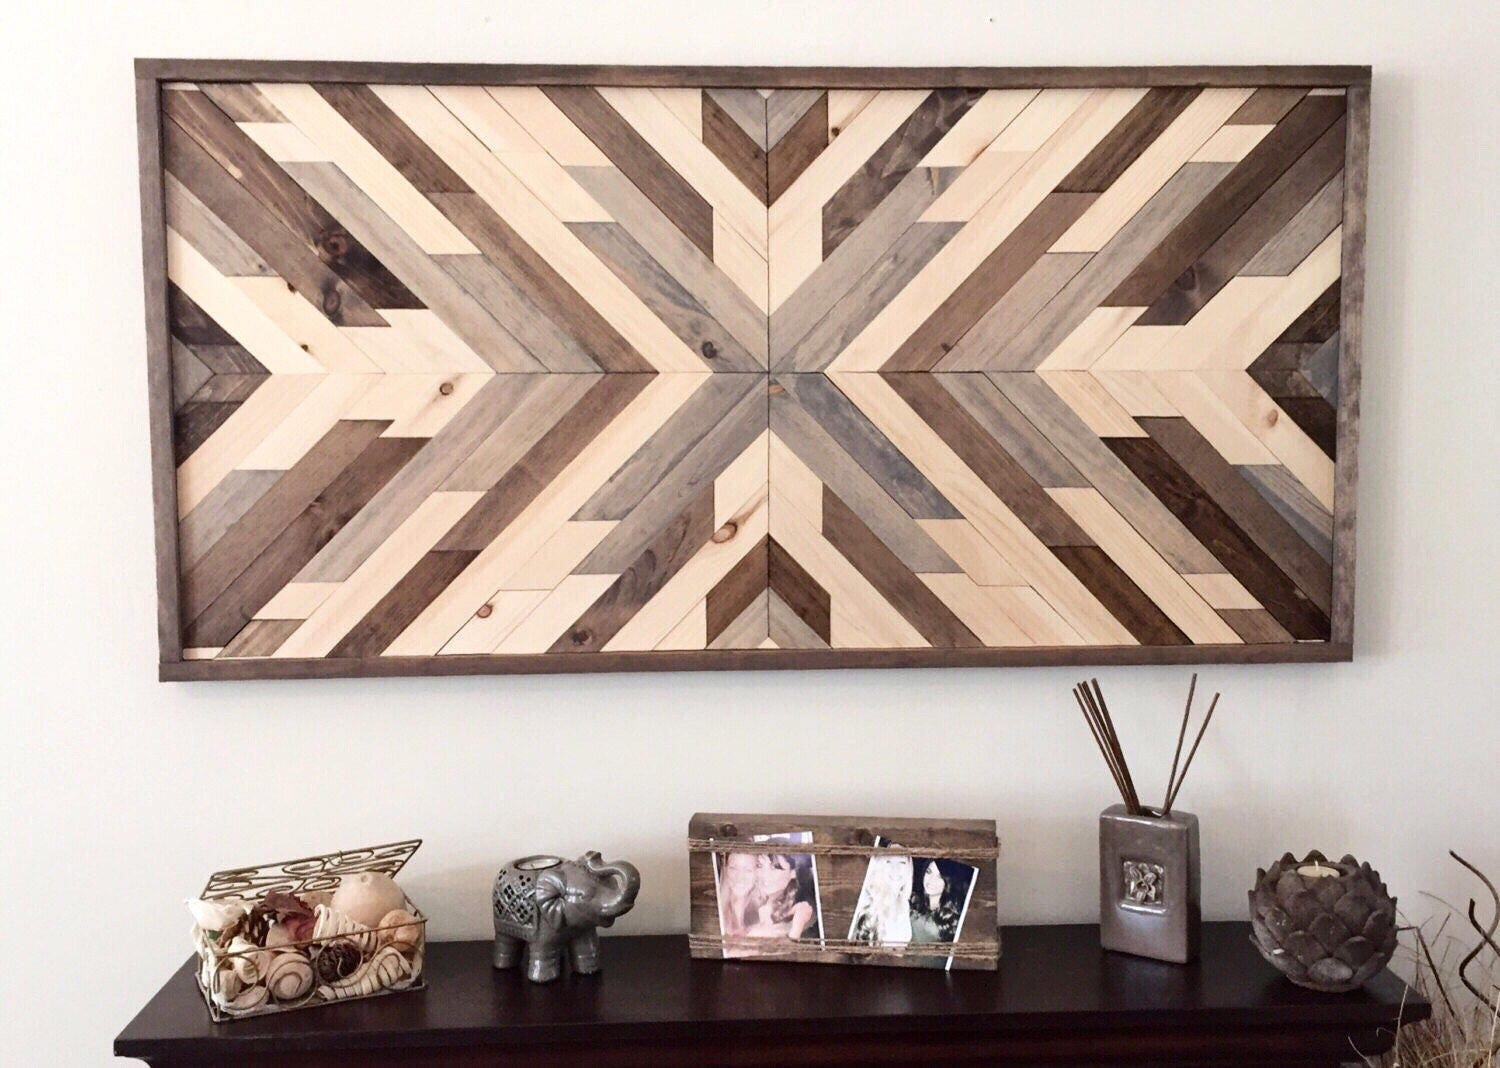 Rustic Wood Wall Decor reclaimed wood wall art wood art rustic wall decor